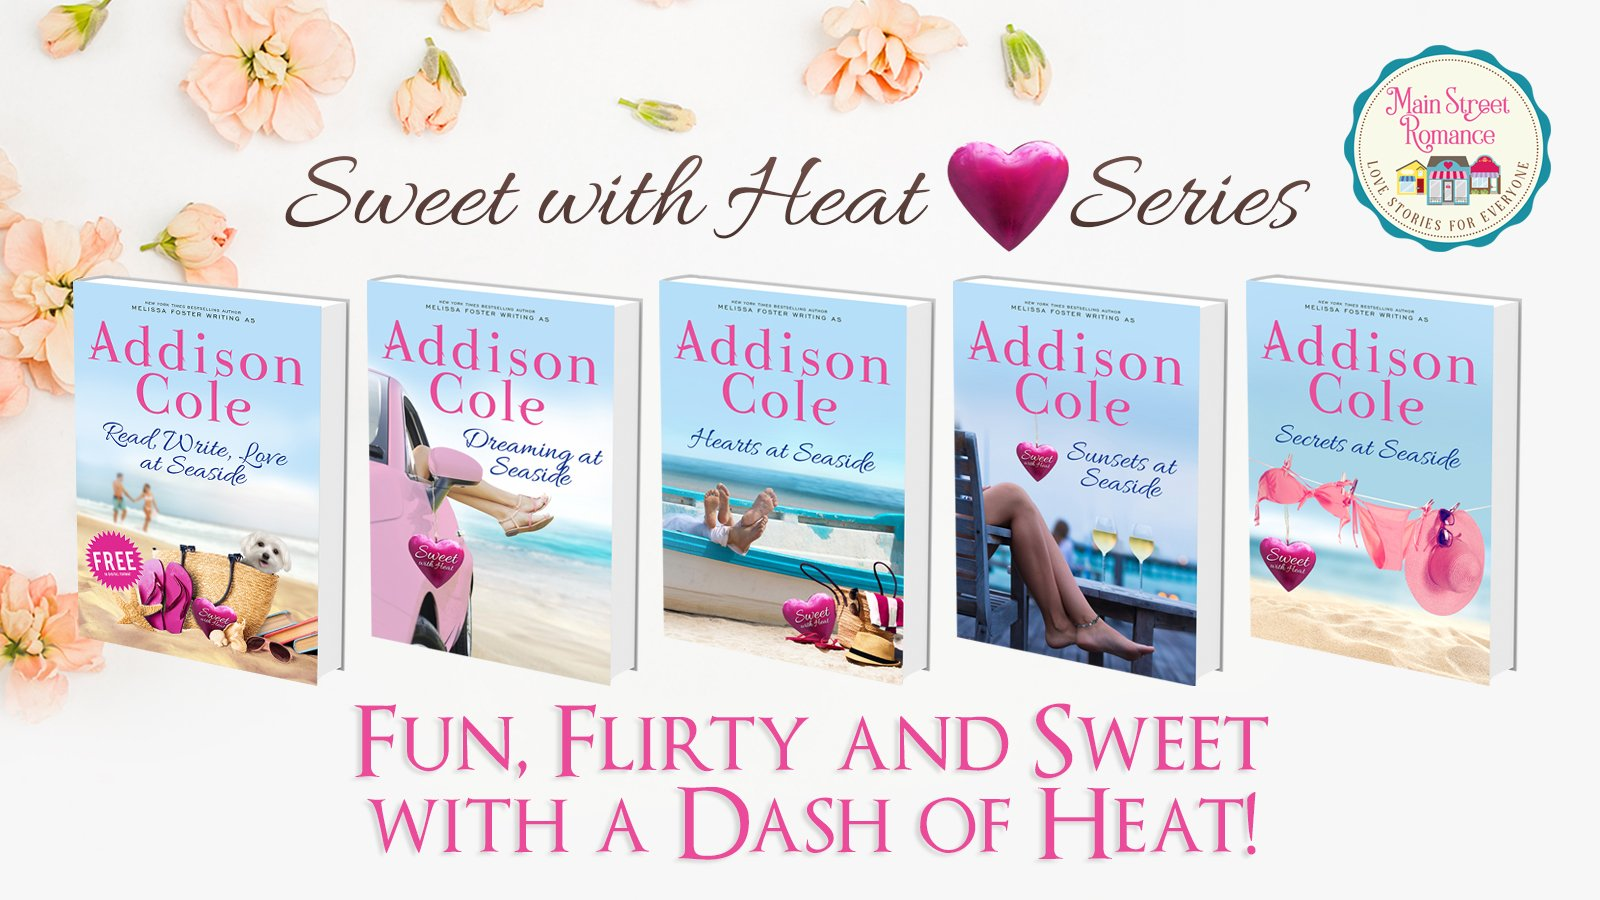 Sweet with Heat Series